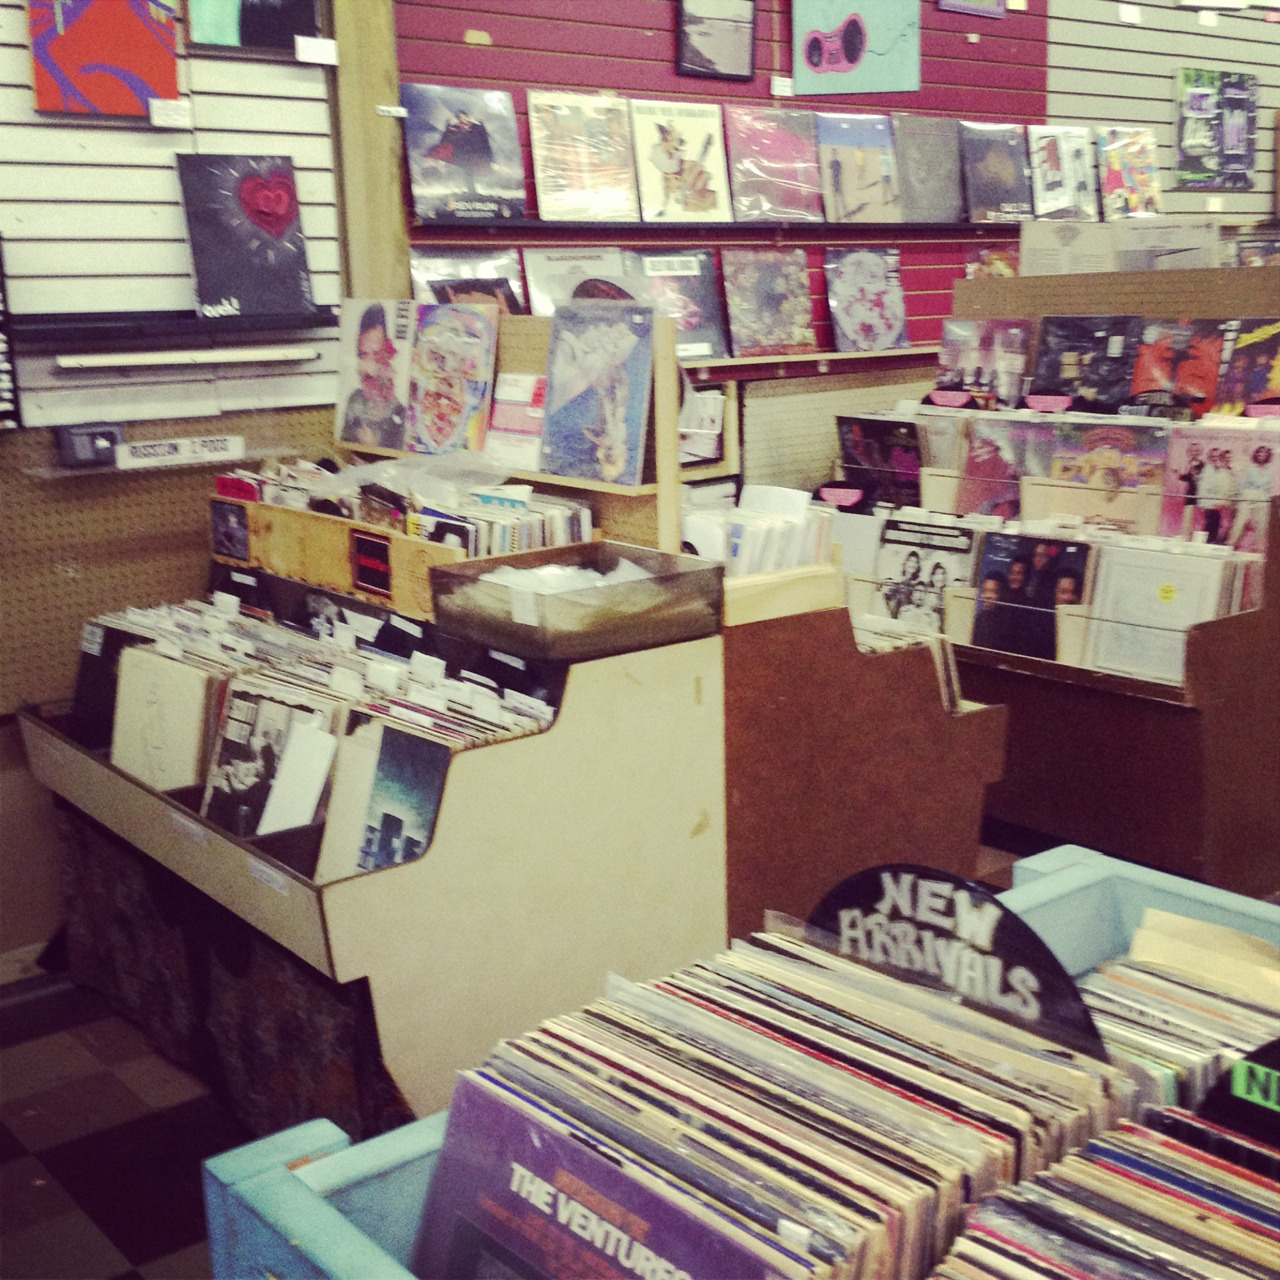 Excalibur vinyl and vintage. Like a second home